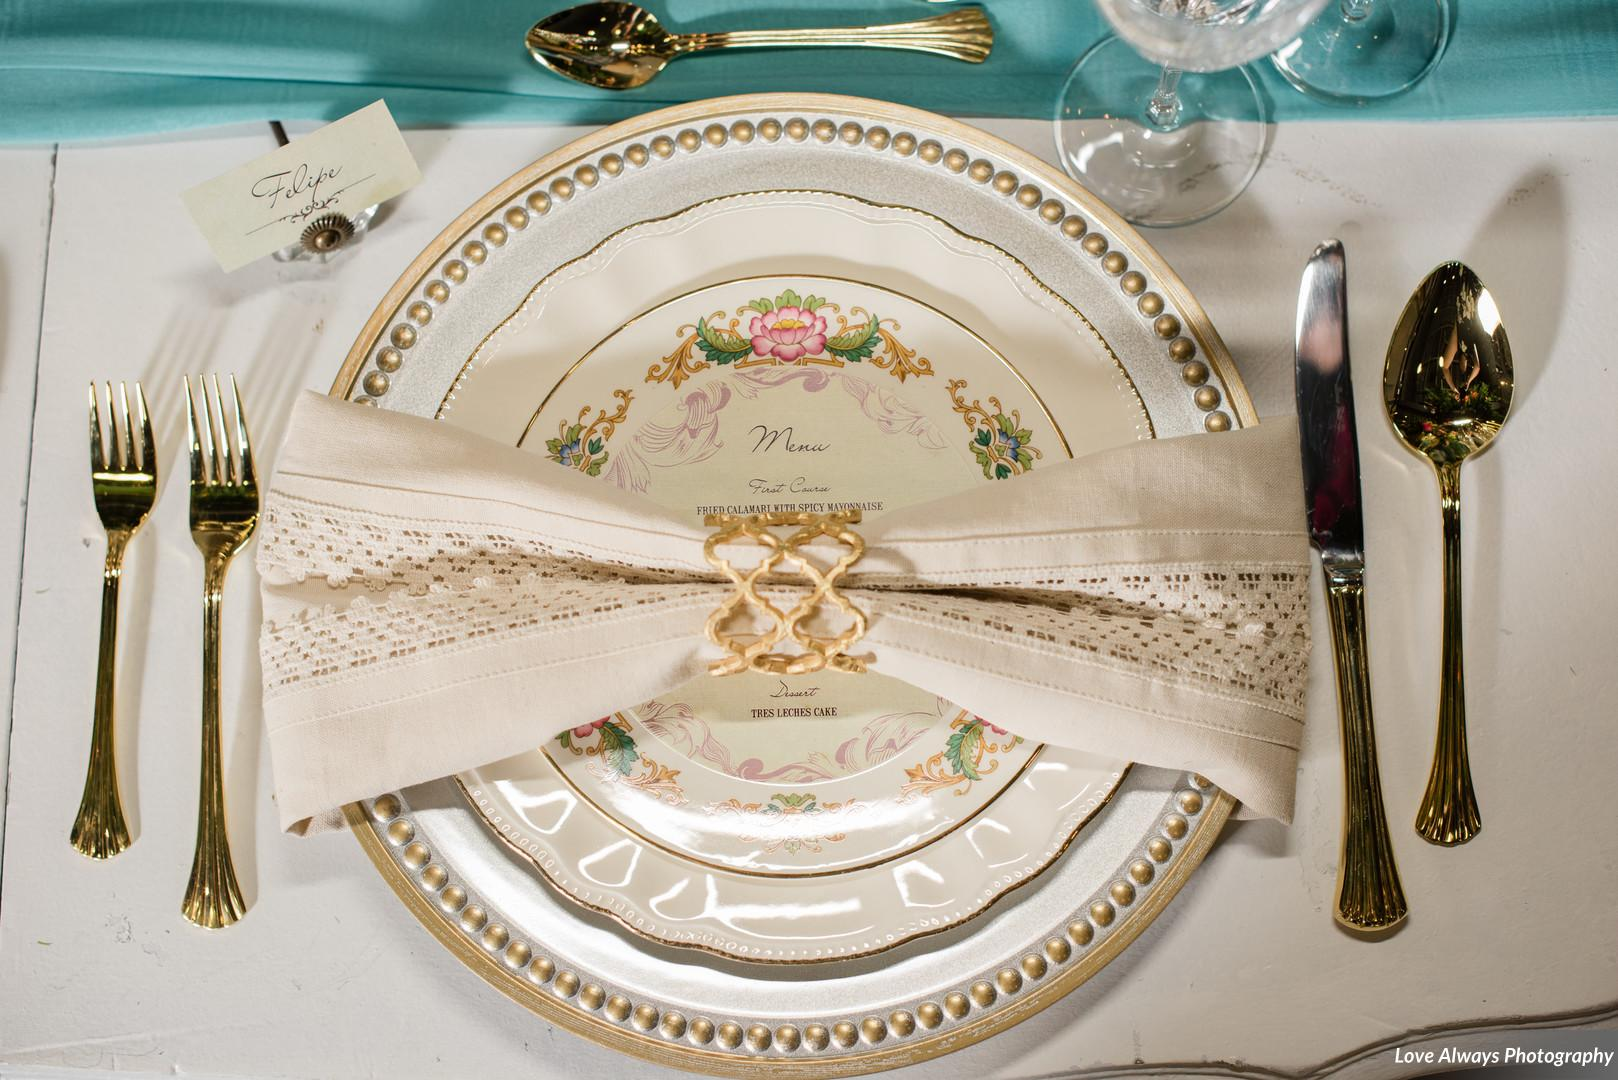 elegant wedding place setting with ivory napkin, gold napkin wring, ivory plates, gold and silver charge, and gold tableware